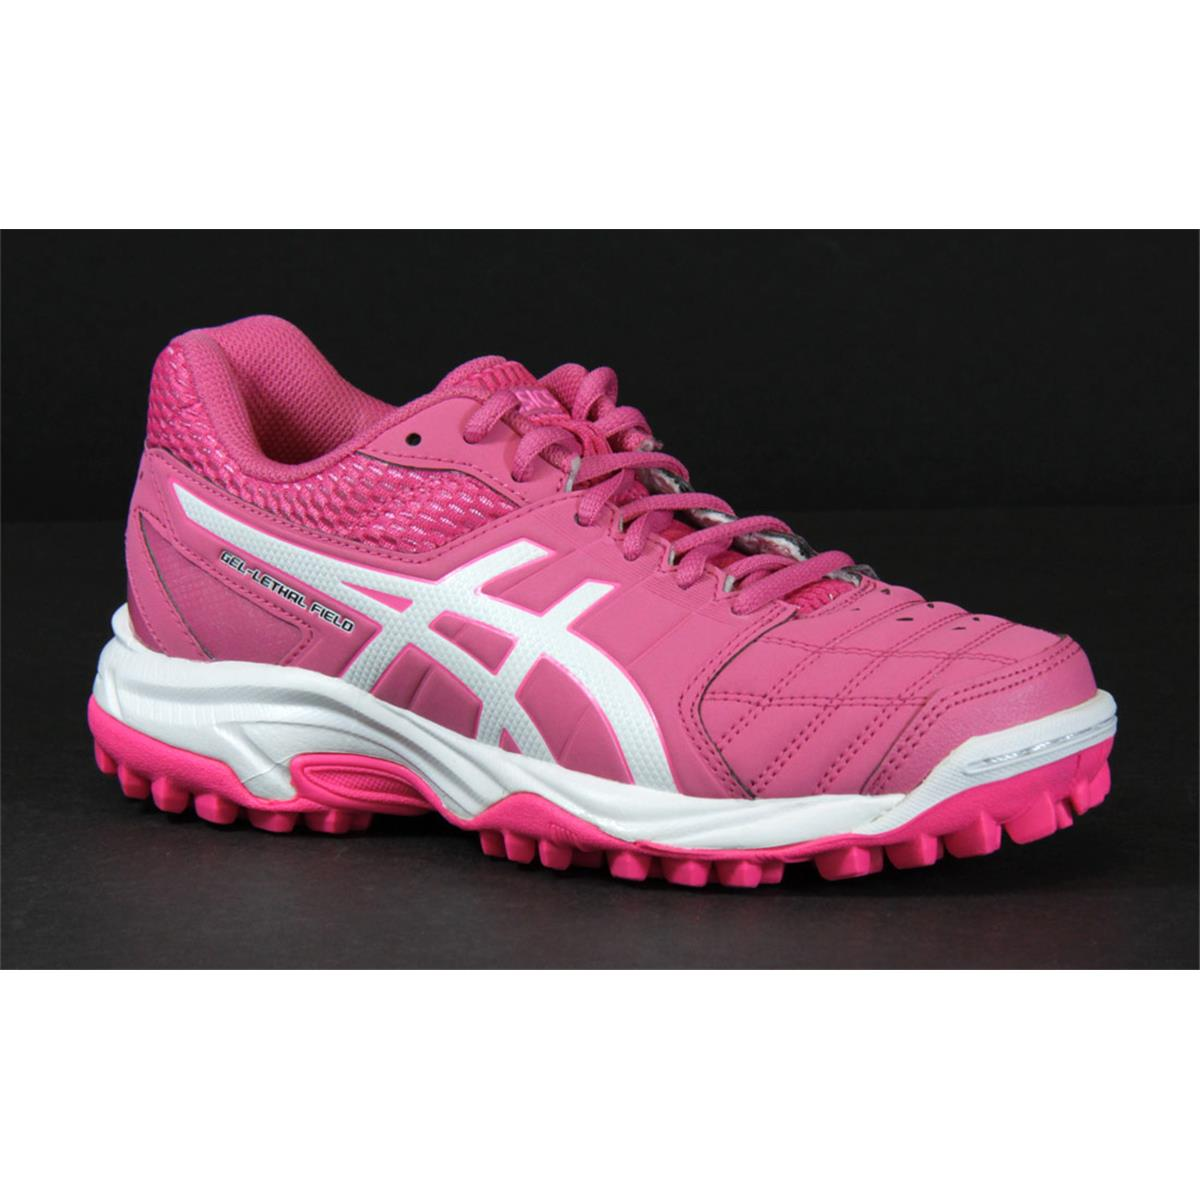 74b4f4d7e Asics Gel Lethal Field 2 GS Junior Hockey Shoes (Pink). Star Star Star Star  Star. Be the first to write a review. Image. Click to expand